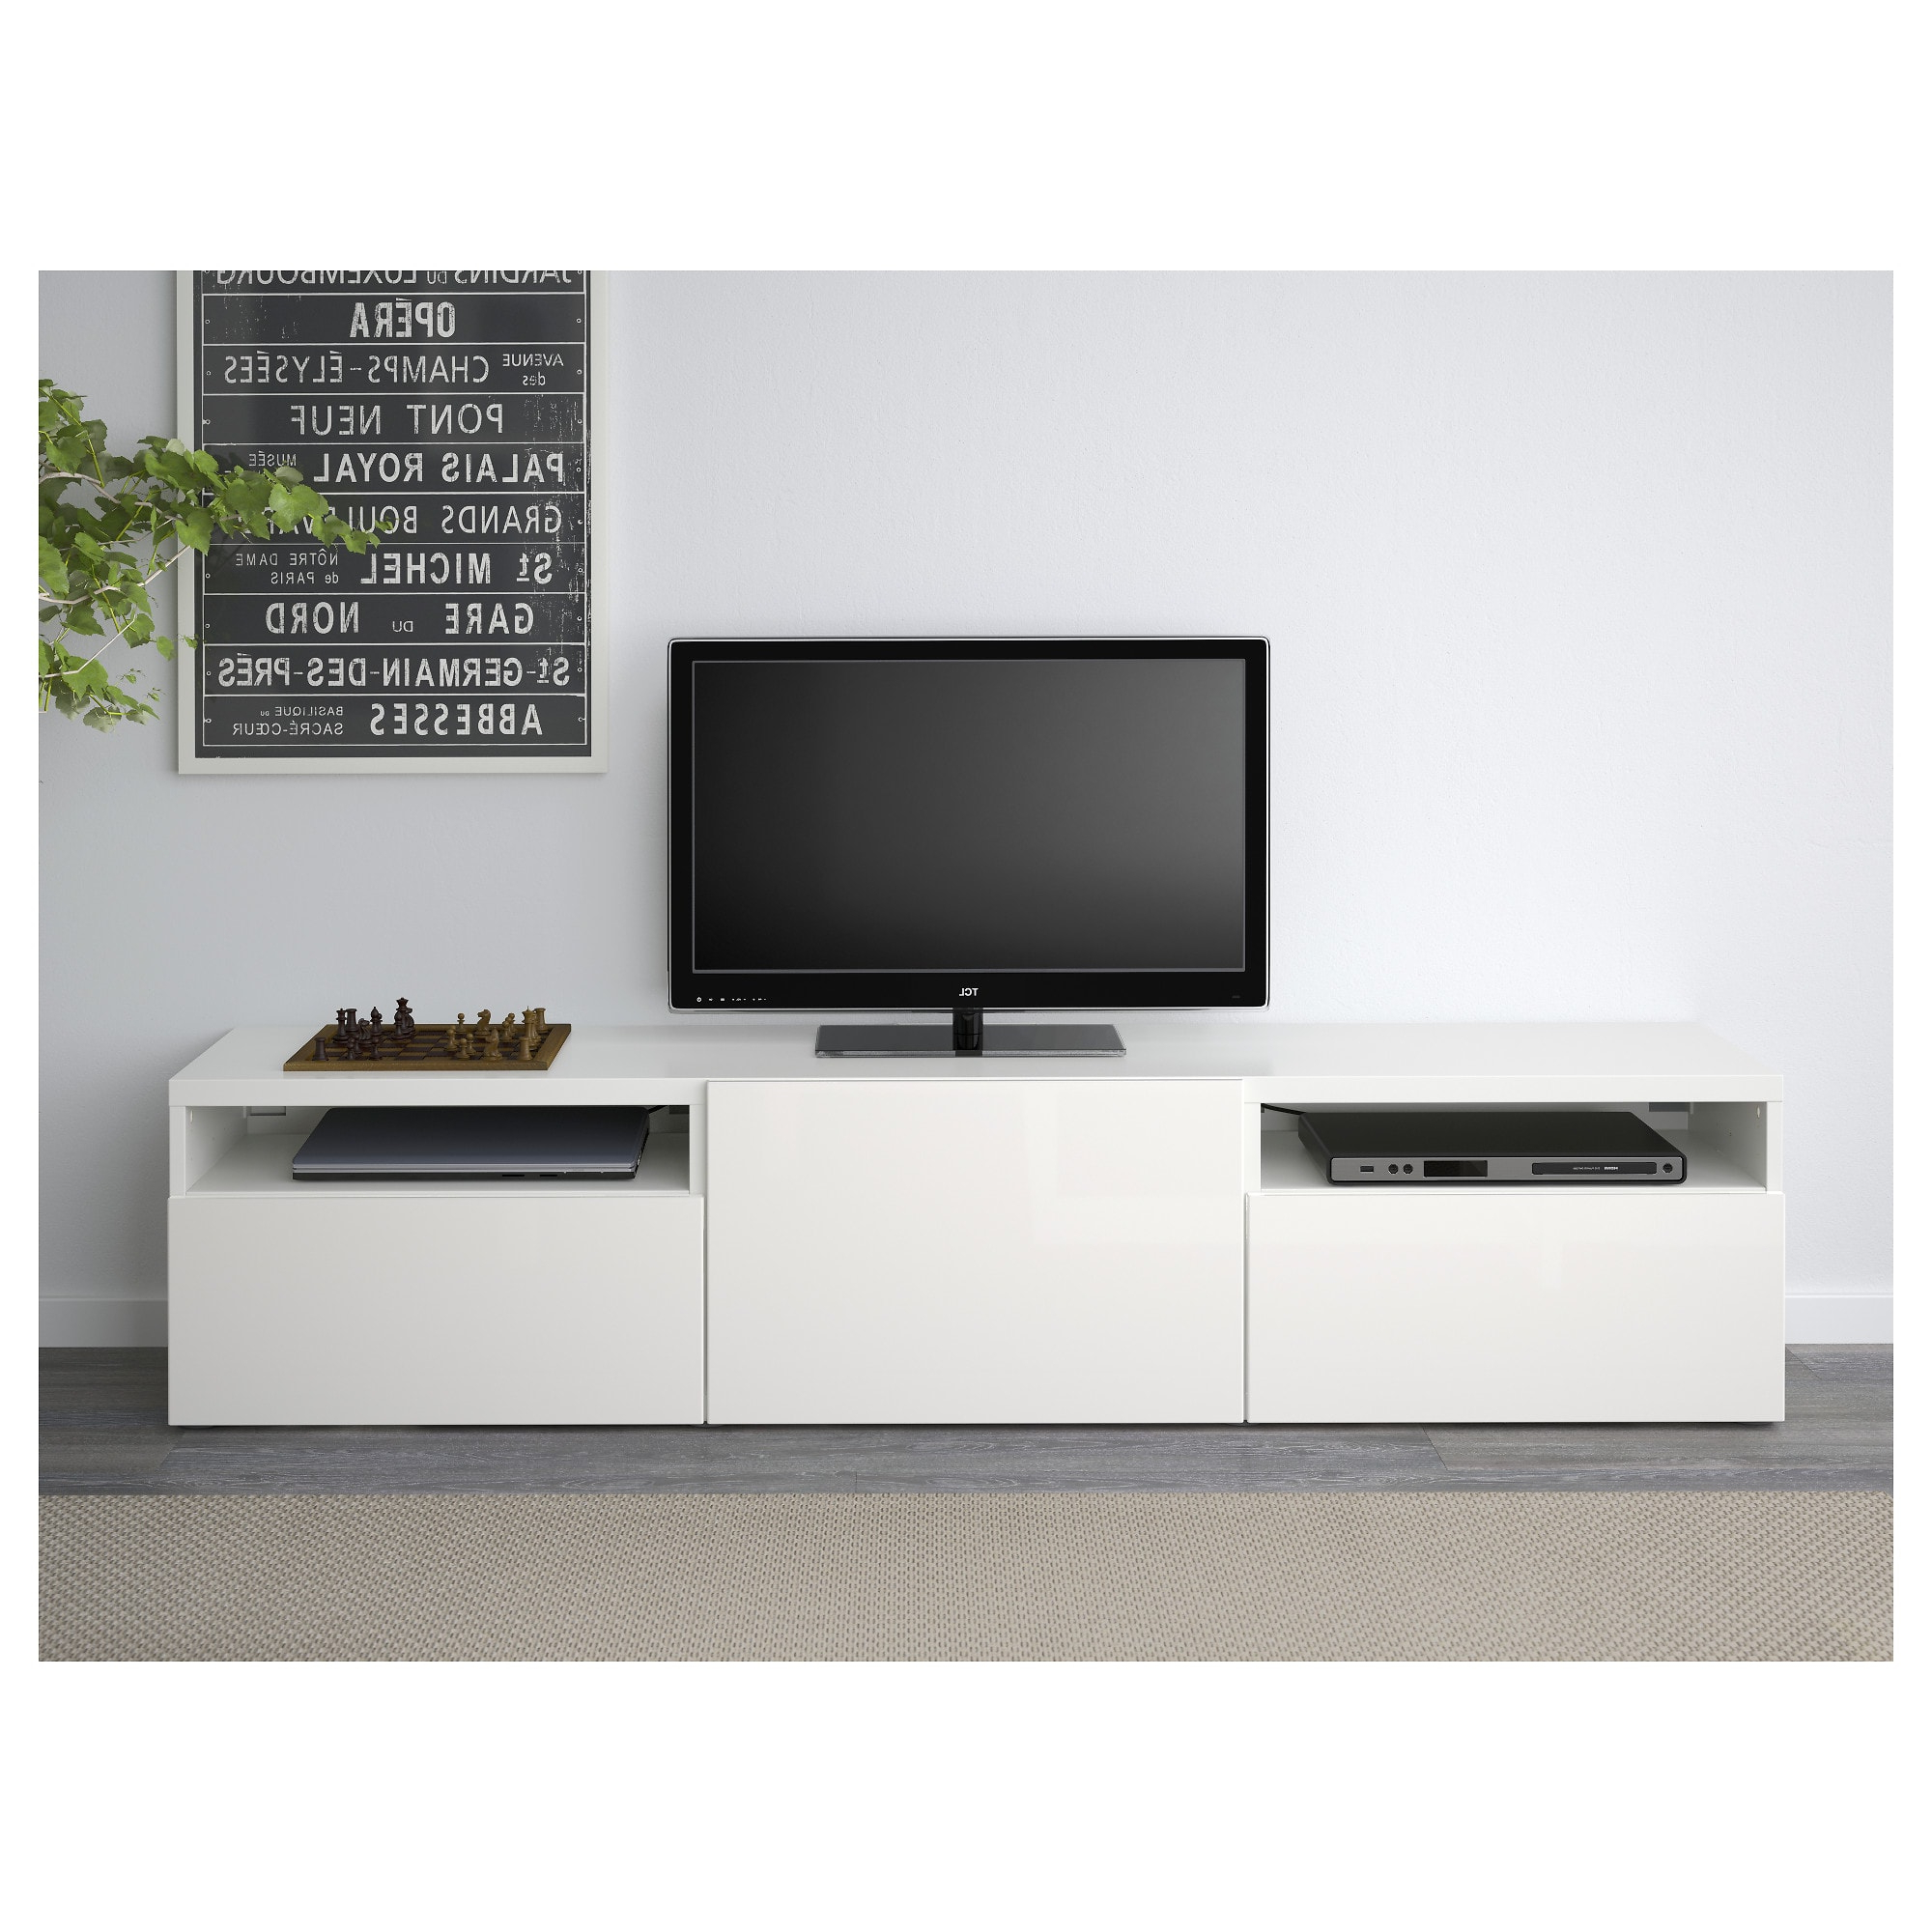 Most Current Bestå Tv Bench White/selsviken High Gloss/white 180 X 40 X 38 Cm – Ikea Inside High Gloss Tv Benches (View 10 of 20)